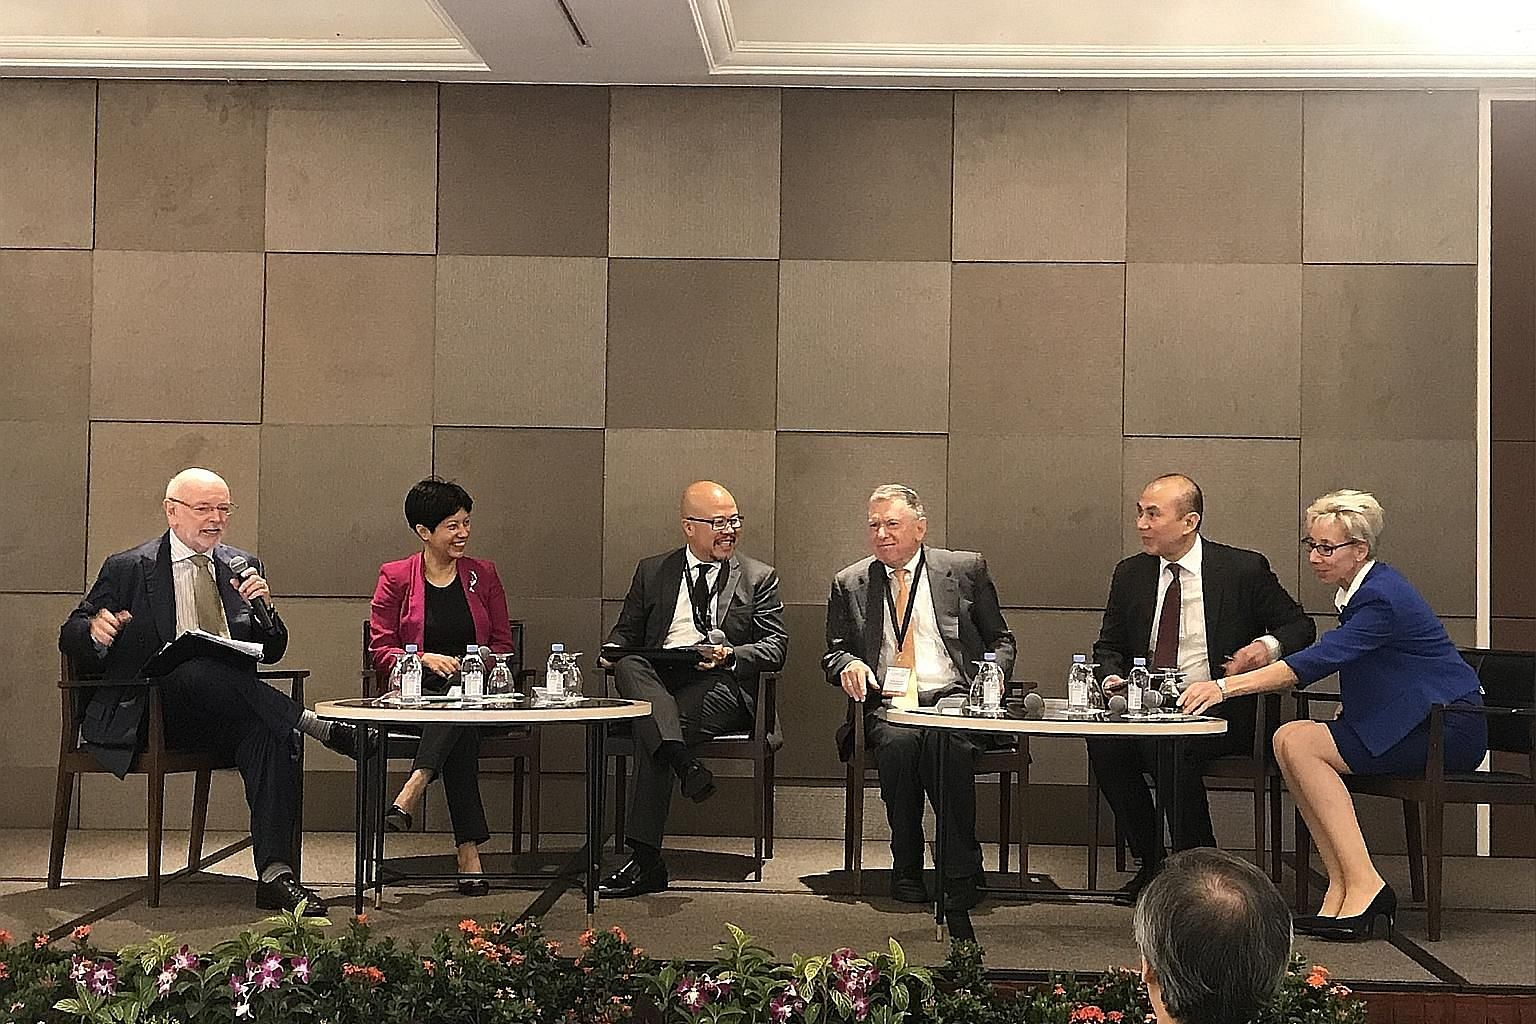 At the SMU-TA Centre for Excellence in Taxation conference yesterday were (from left) Professor Jeffrey Owens, chairman of the centre's technical advisory panel; Ms Indranee Rajah; Mr Chris Woo of PwC Singapore; Prof David Rosenbloom, member of the a